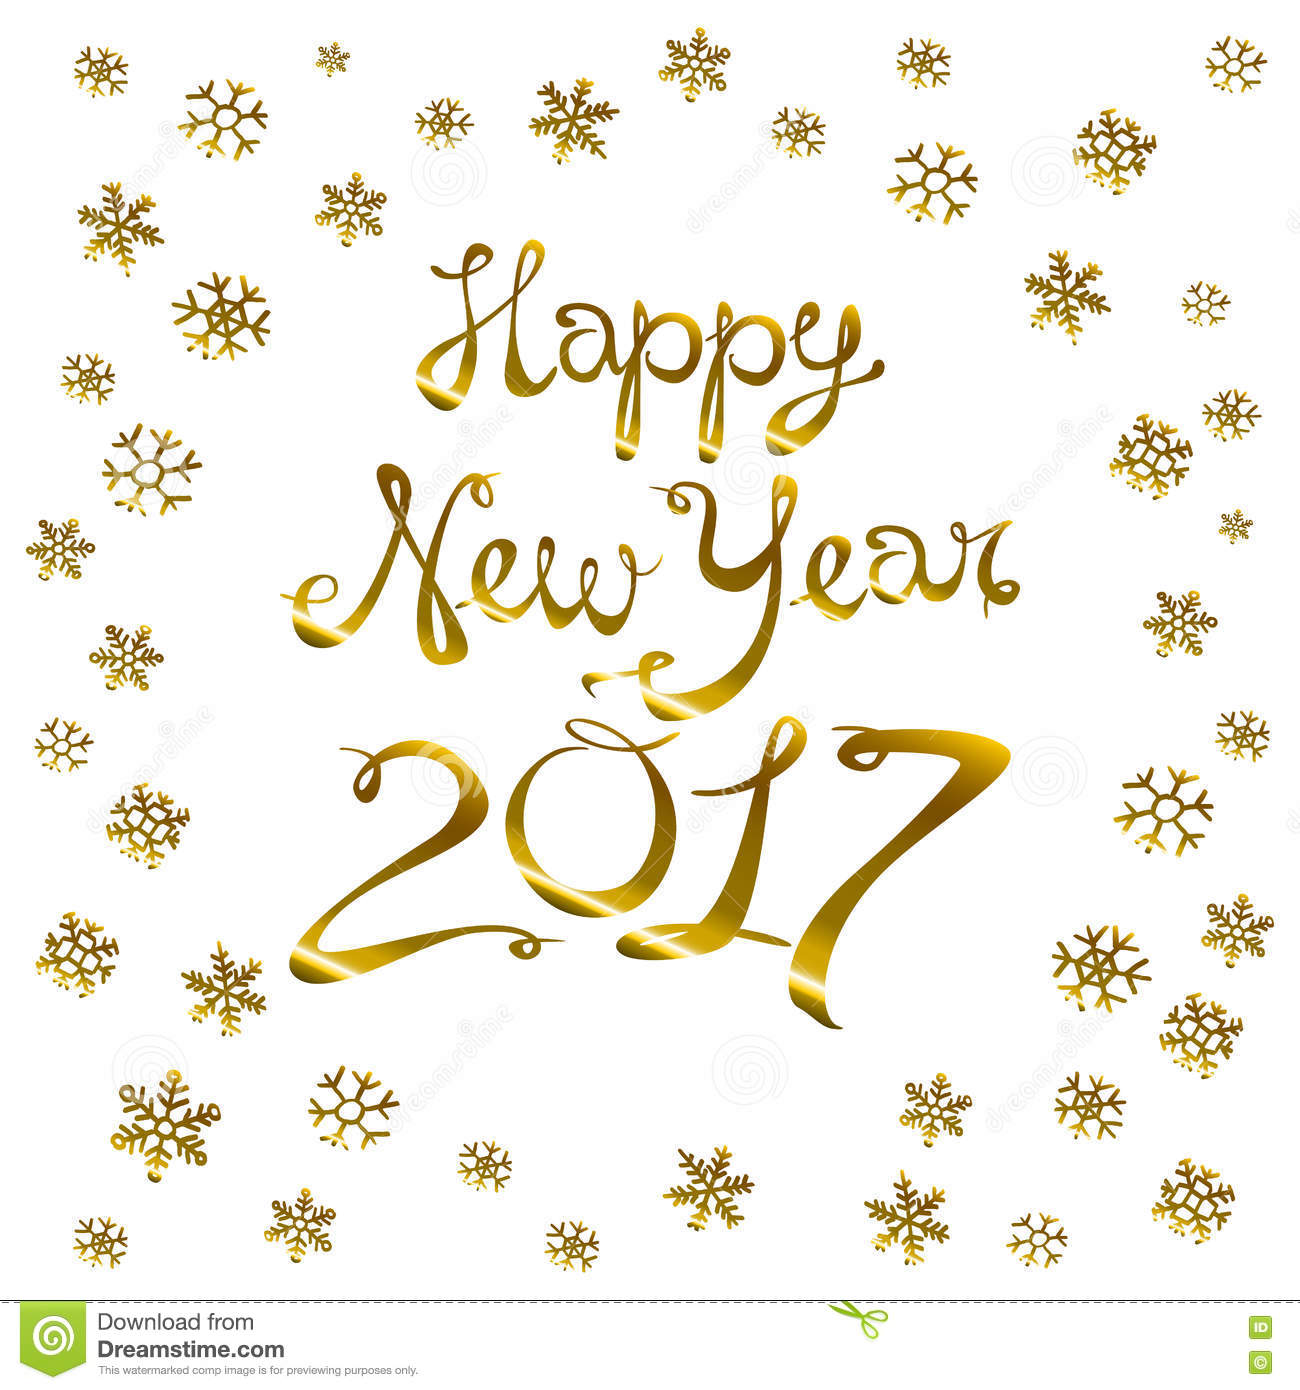 happy new year card gold template over black background with golden sparks happy new year 2017 template for your design vector illustration art